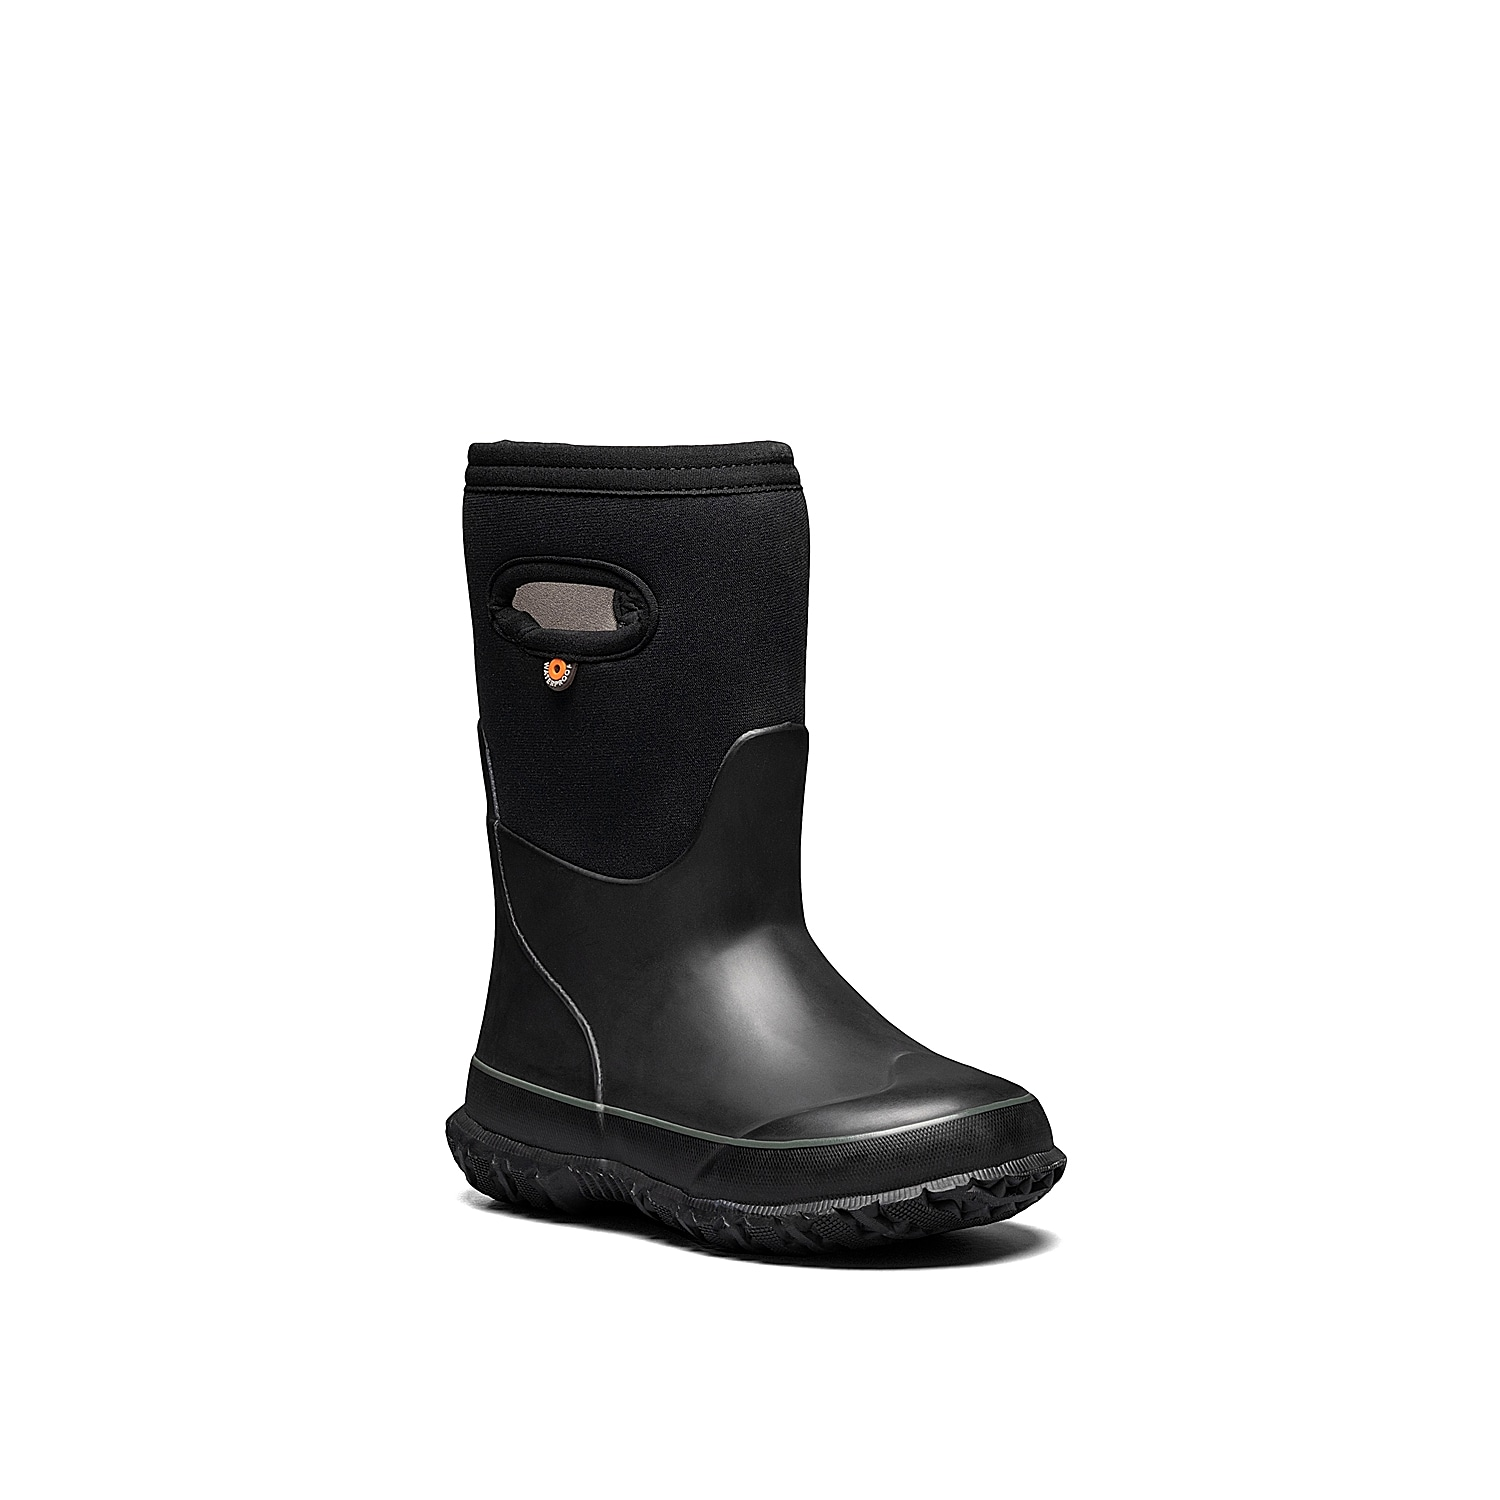 His feet will stay cozy and stylish in the Grasp Solid snow boot from Bogs. Designed with 5mm Neo-Tech waterproof insulation and cold rated to -30°C, this tall boot features eco-friendly Bloom EVA footbed and odor-eliminating DuraFresh technology.Not sure which size to order? Clickhereto check out our Kids' Measuring Guide! For more helpful tips and sizing FAQs, clickhere.